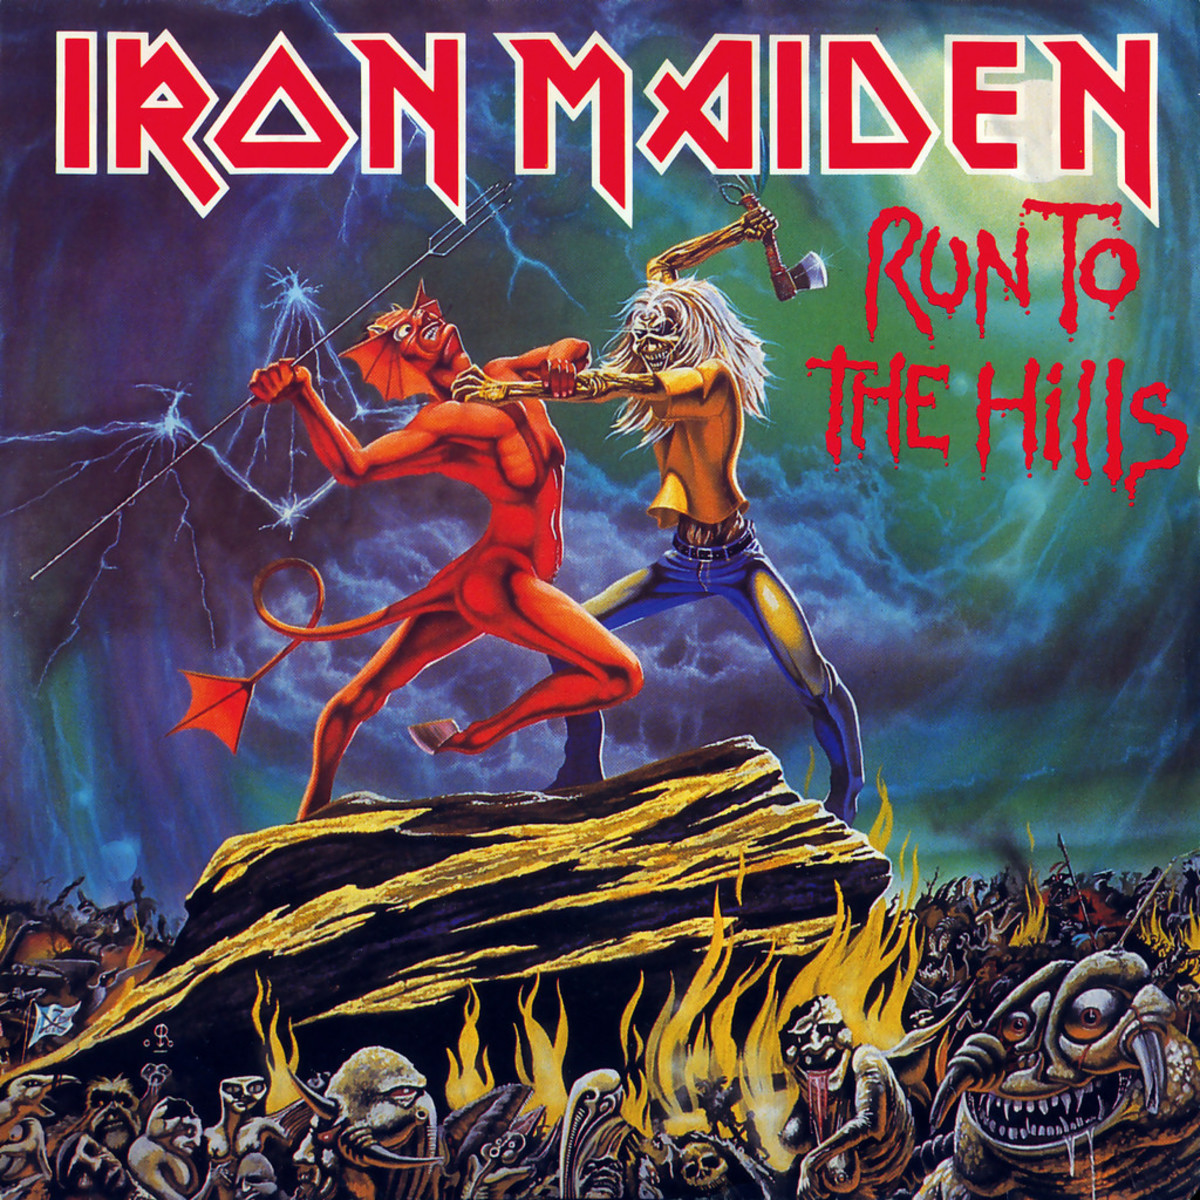 "Iron Maiden ""Run To The Hills"" 1C K 052-07 604 Z  12"" Vinyl Maxi-Single German Pressing (1982) Cover Art by Derek Riggs"